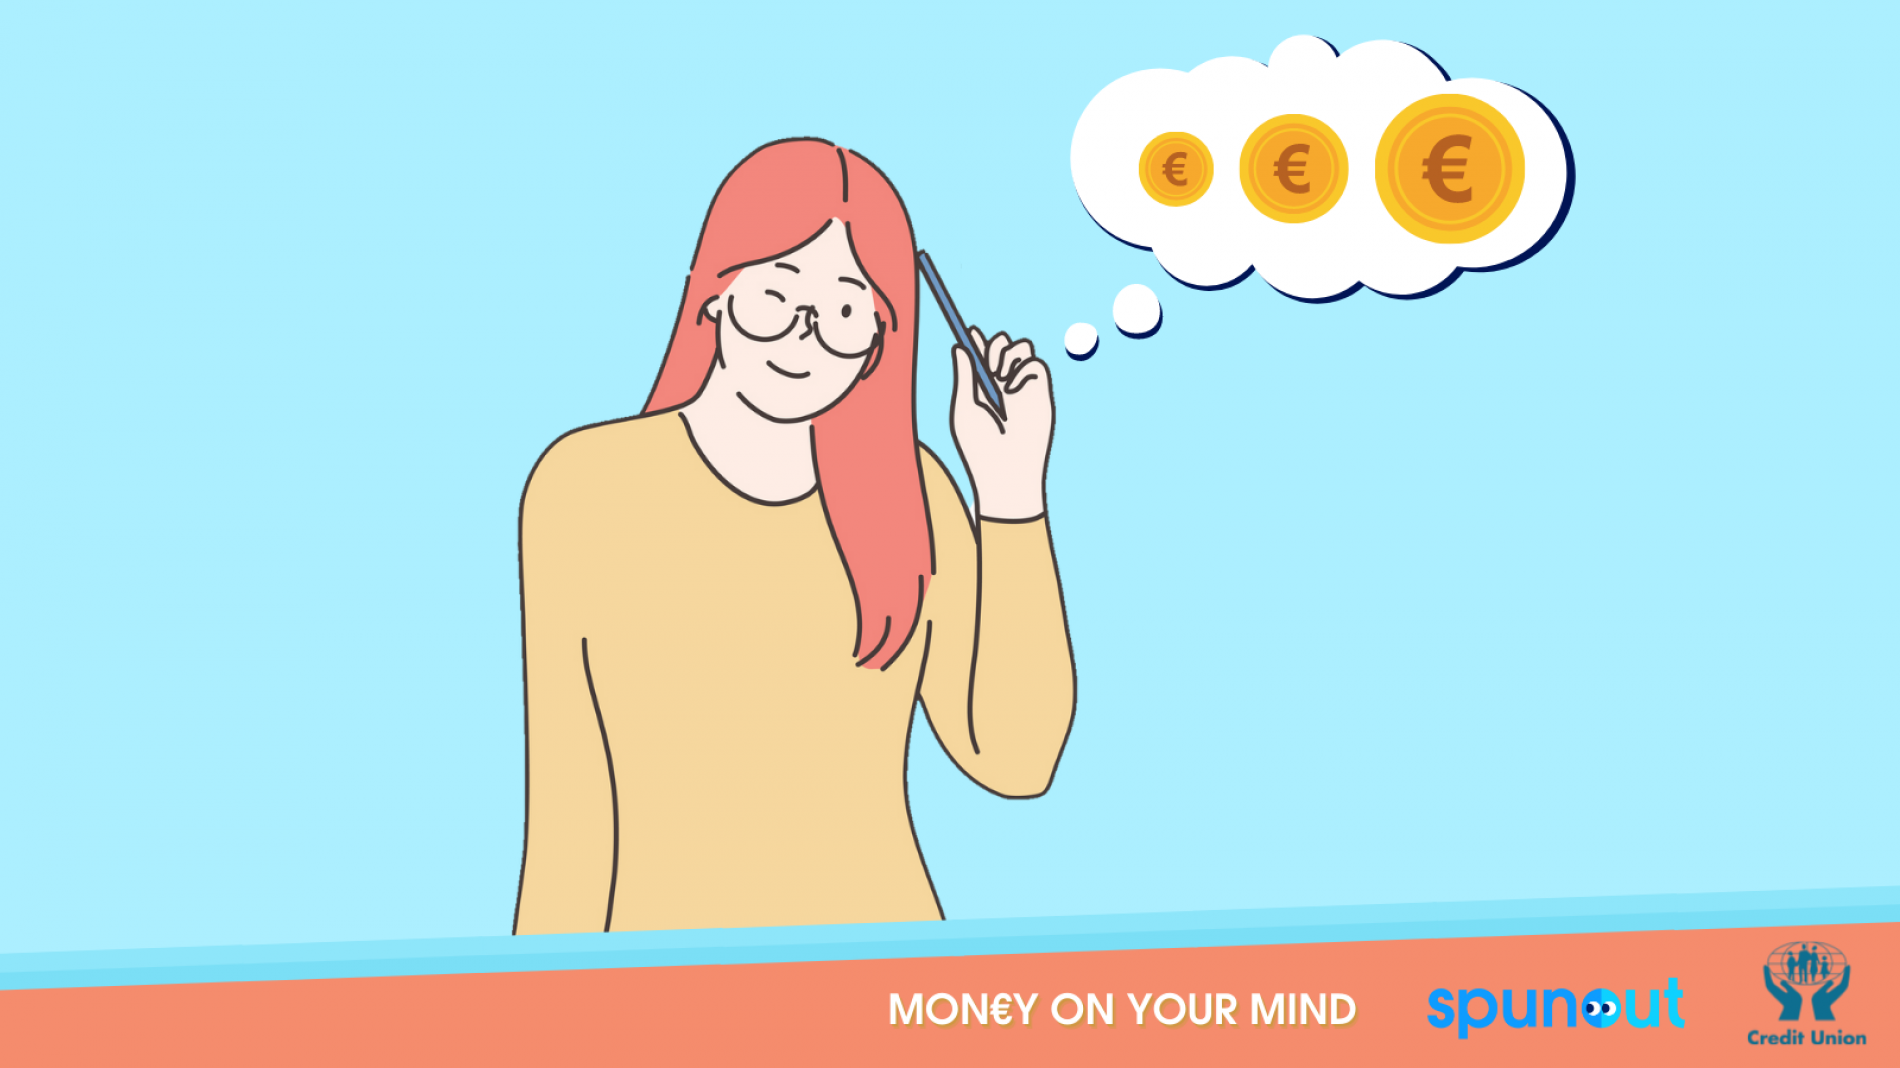 Illustration of a person with a thought bubble thinking about money